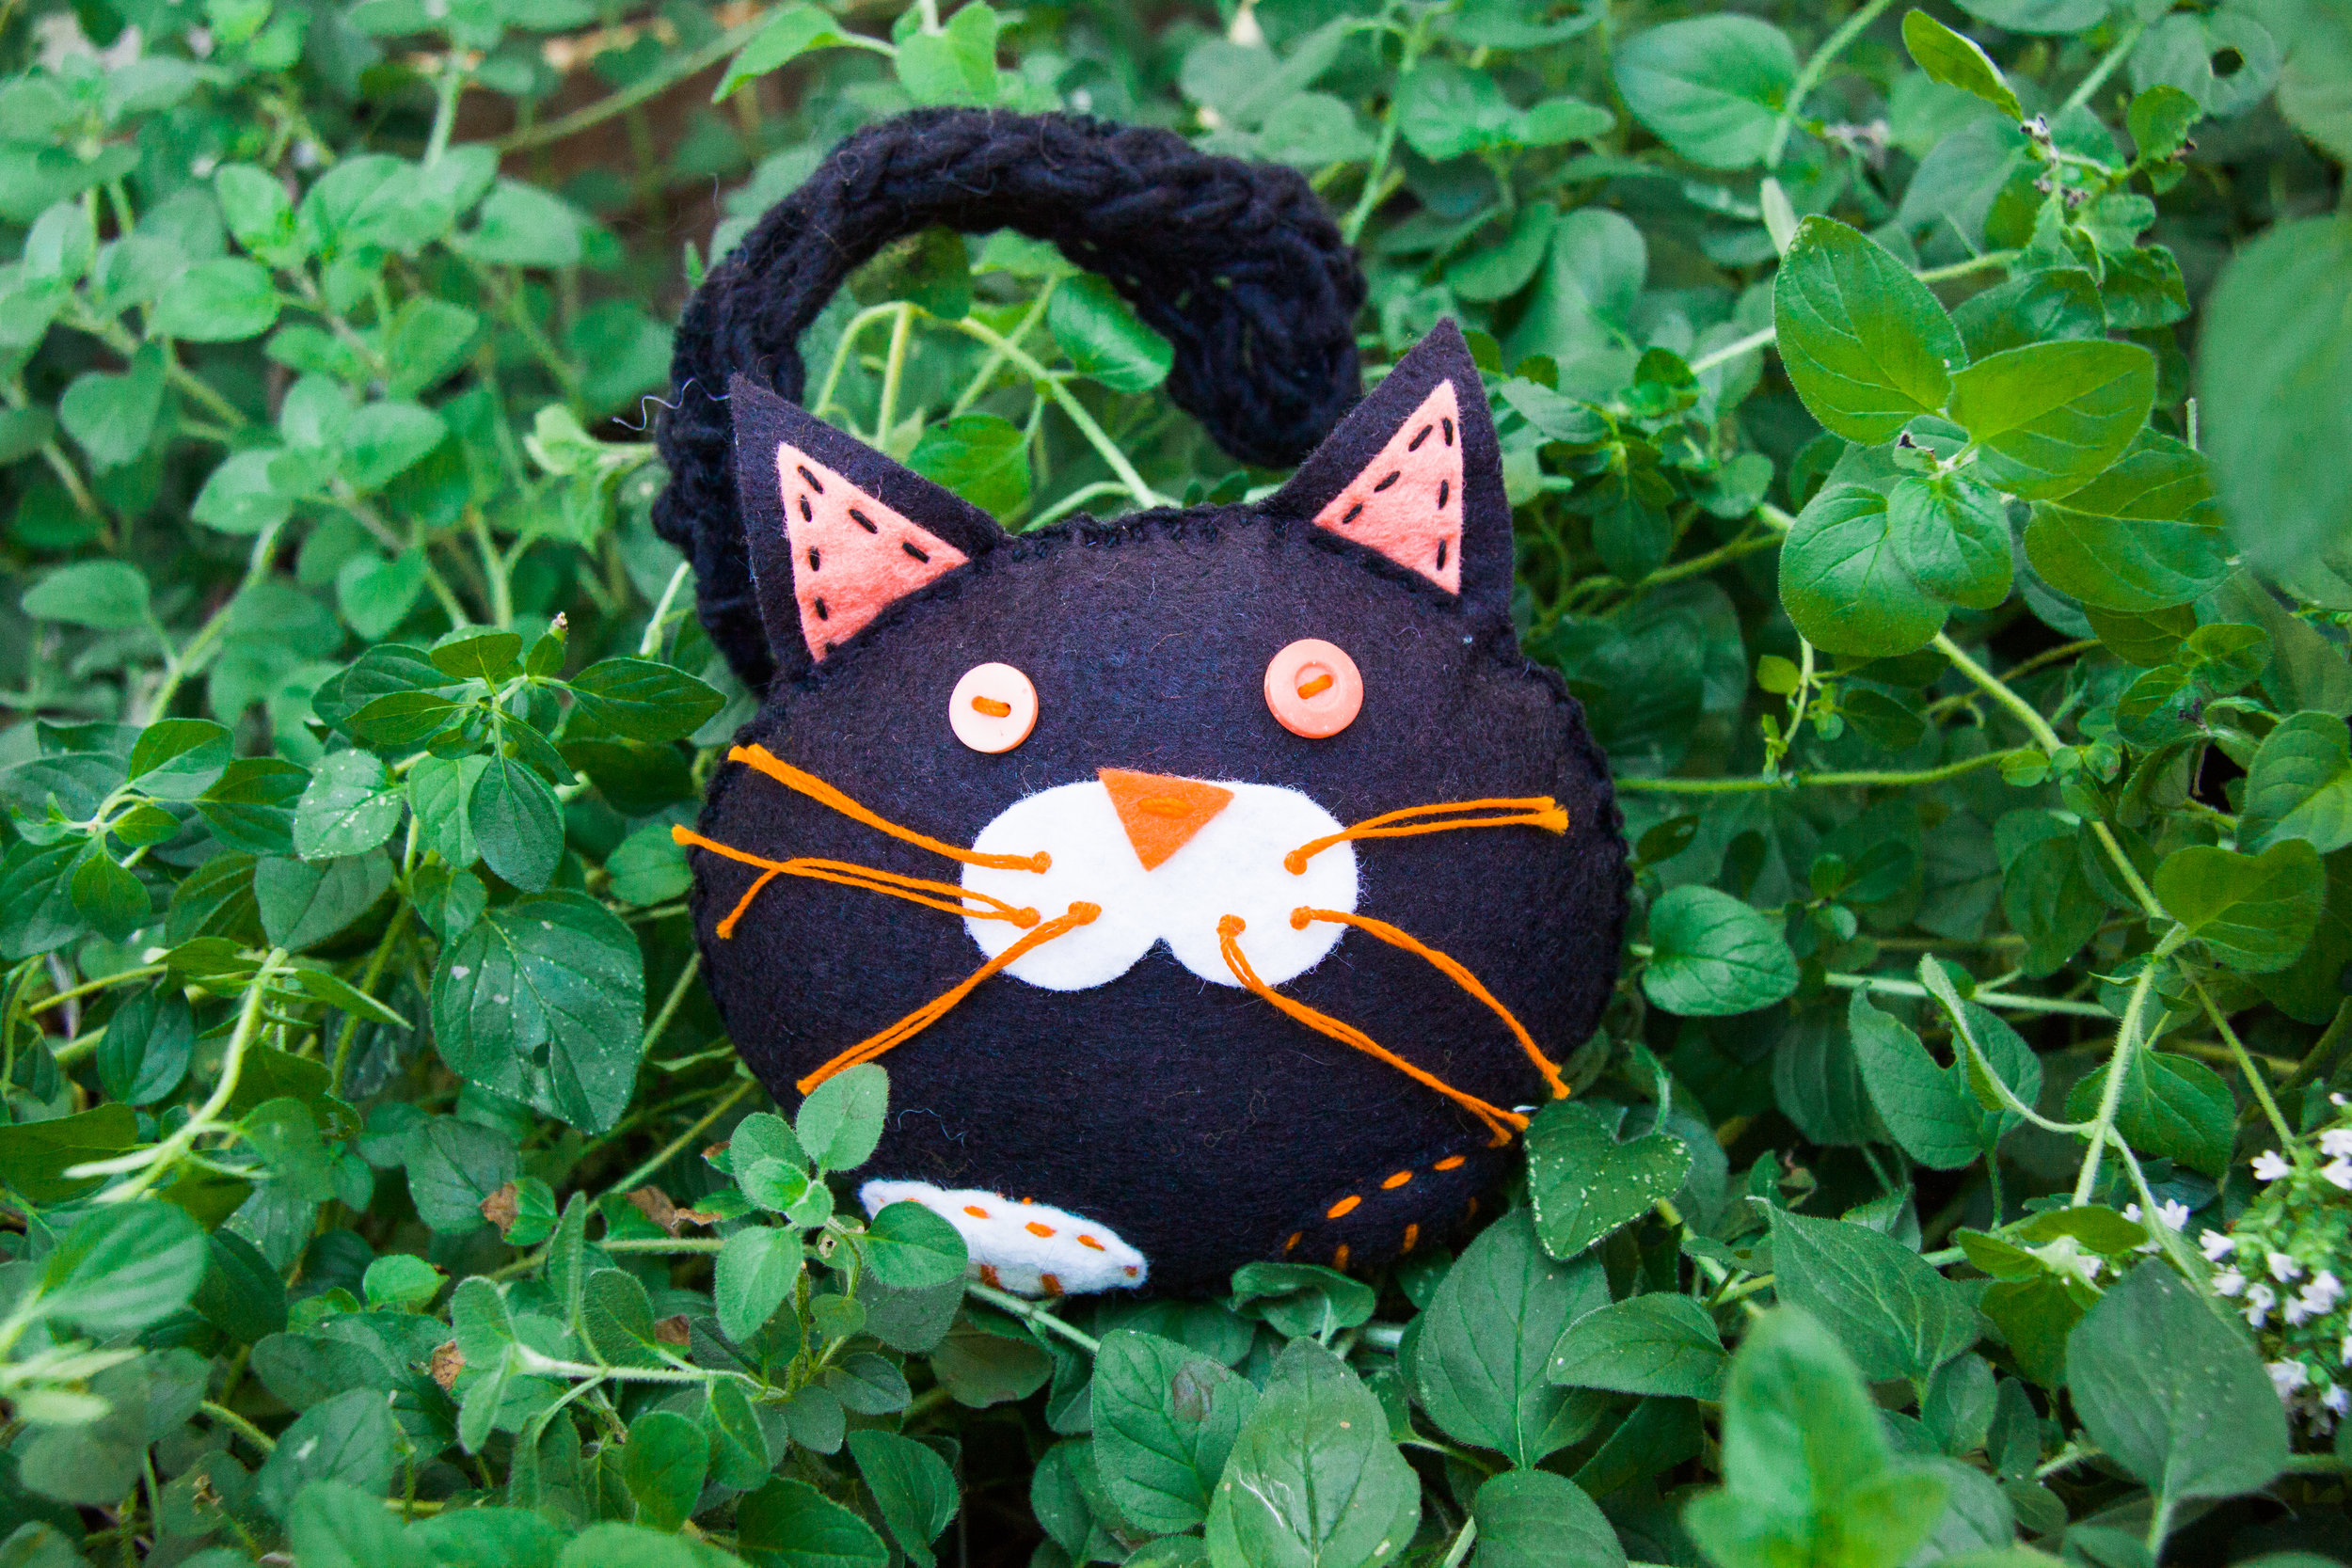 Black cat for Halloween | Autumn crafts the the Forest Fairy Crafts  books by Lenka Vodicka-Paredes and Asia Curry. Handwork and enchanted ideas for children of all ages.